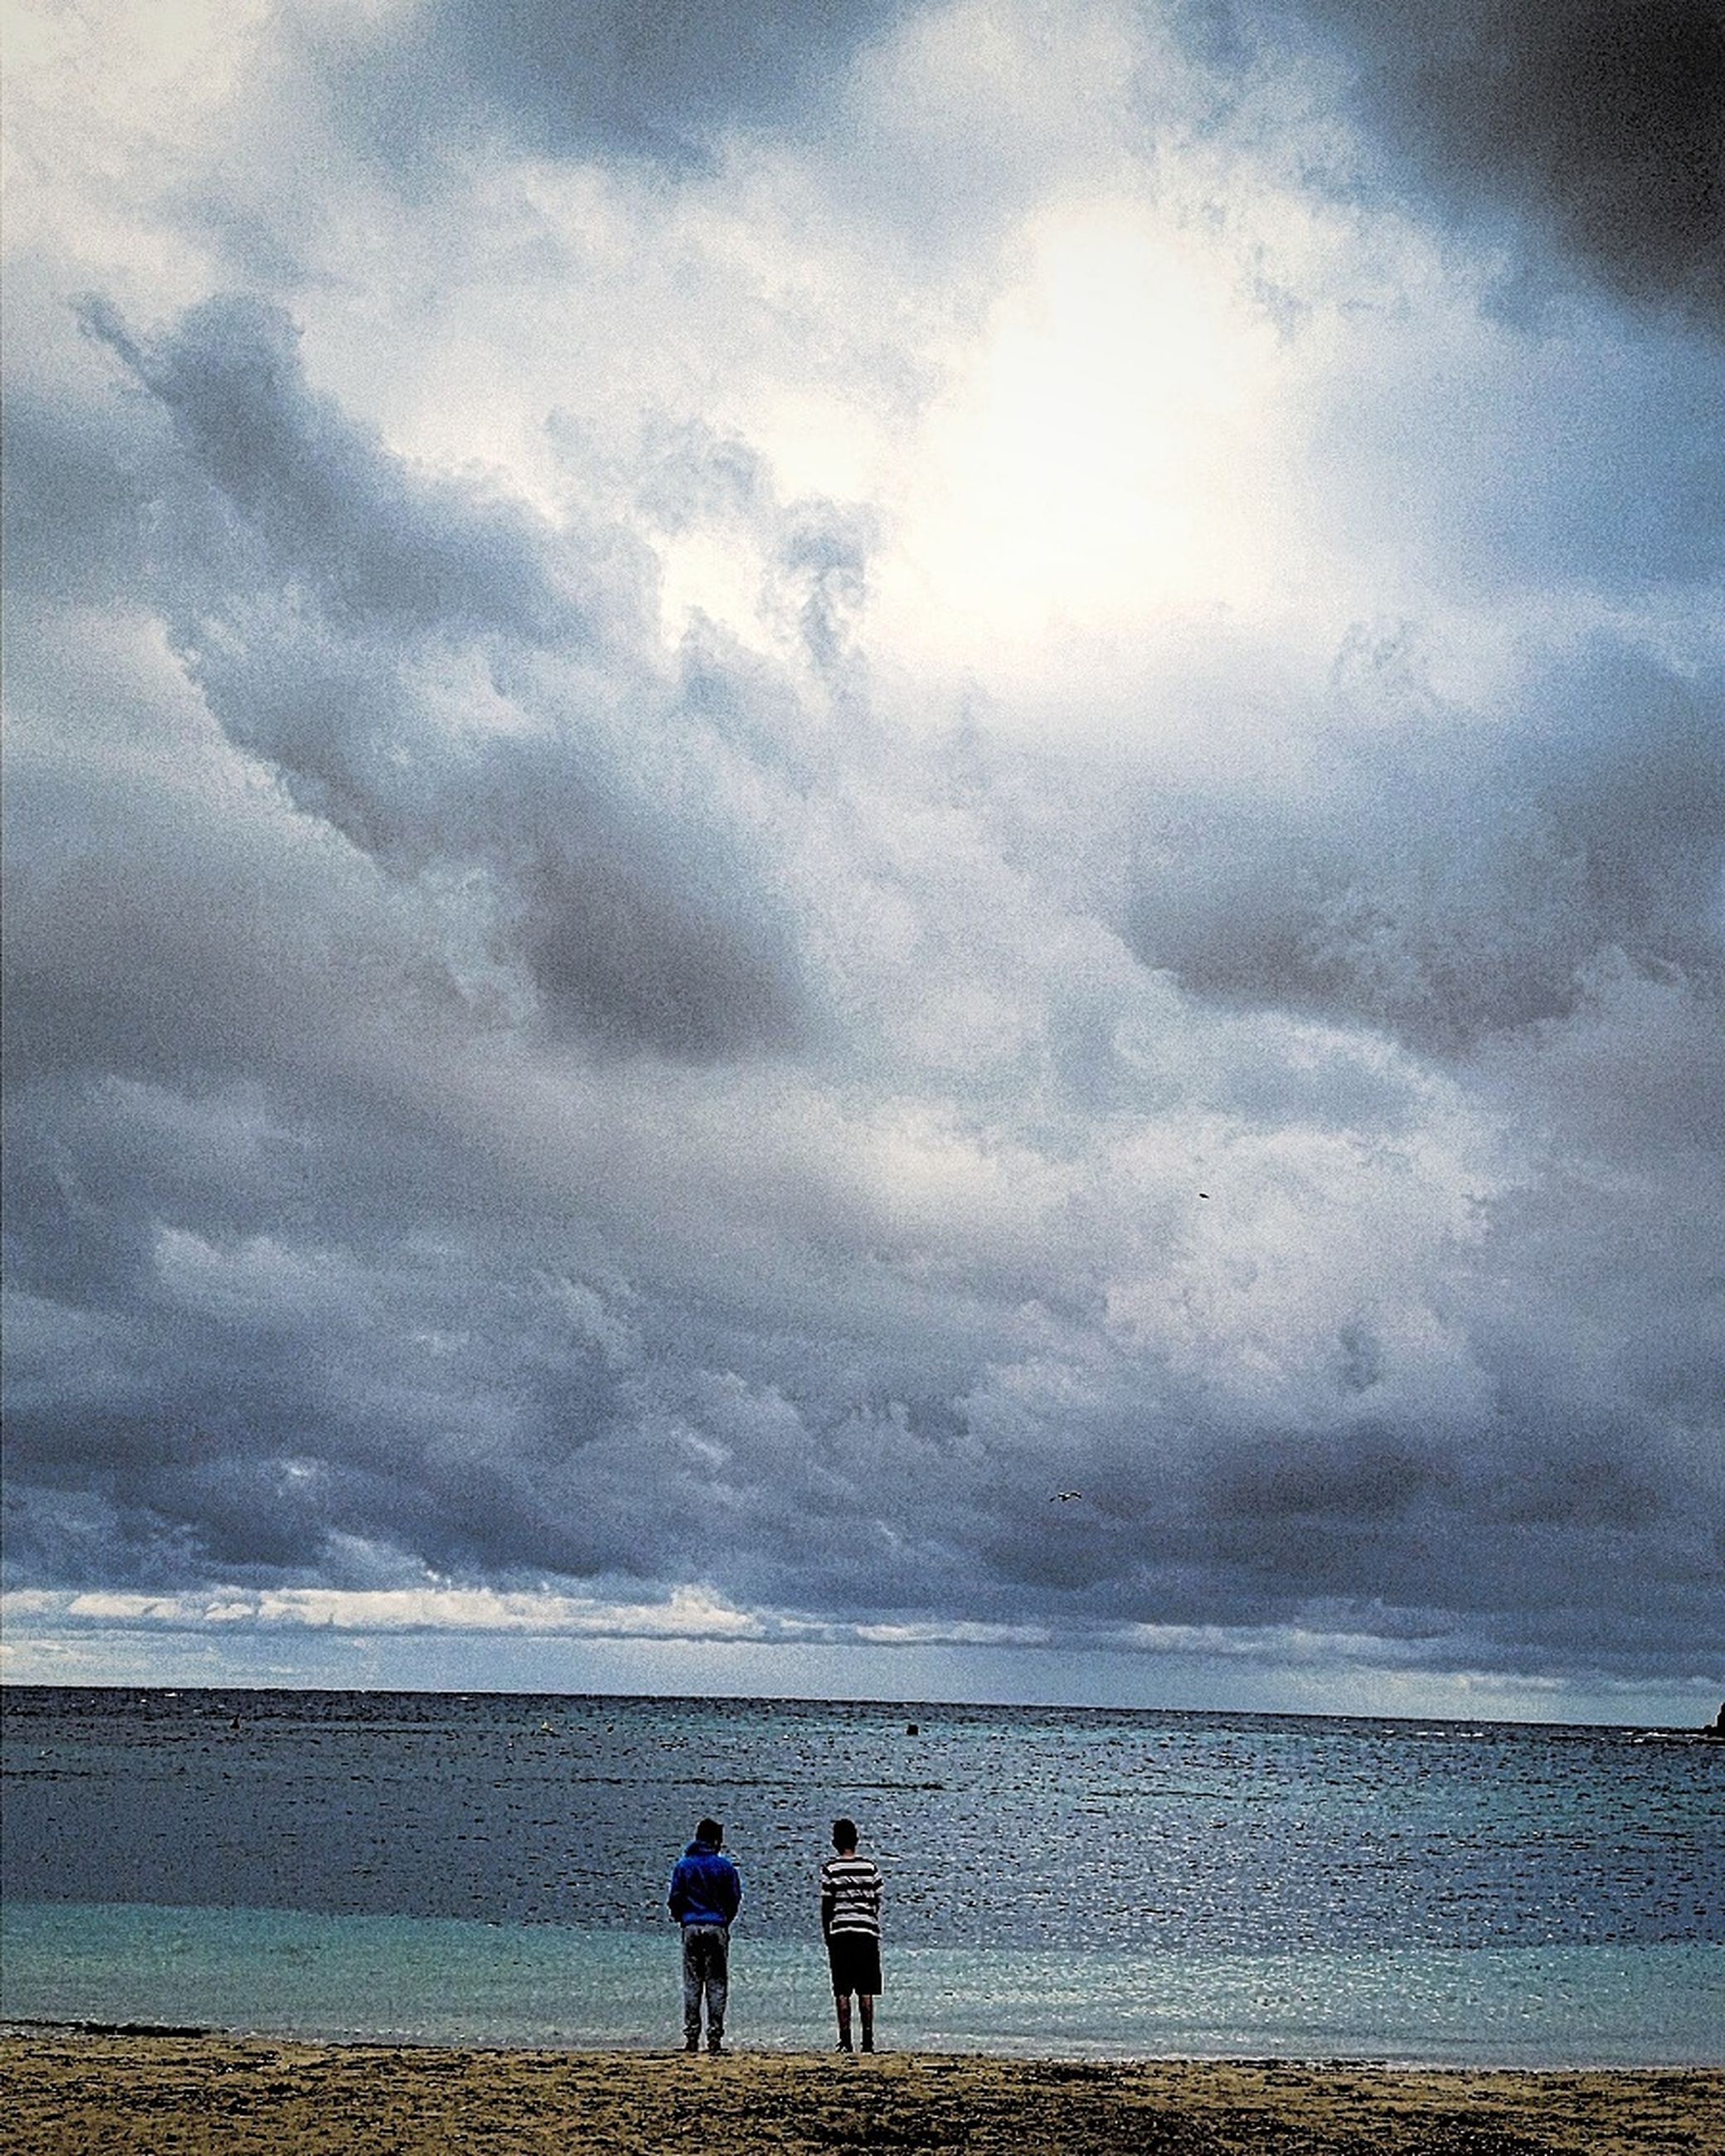 sea, beach, sky, water, nature, beauty in nature, cloud - sky, leisure activity, real people, two people, horizon over water, outdoors, scenics, tranquility, full length, men, lifestyles, vacations, coastline, togetherness, sand, day, people, adult